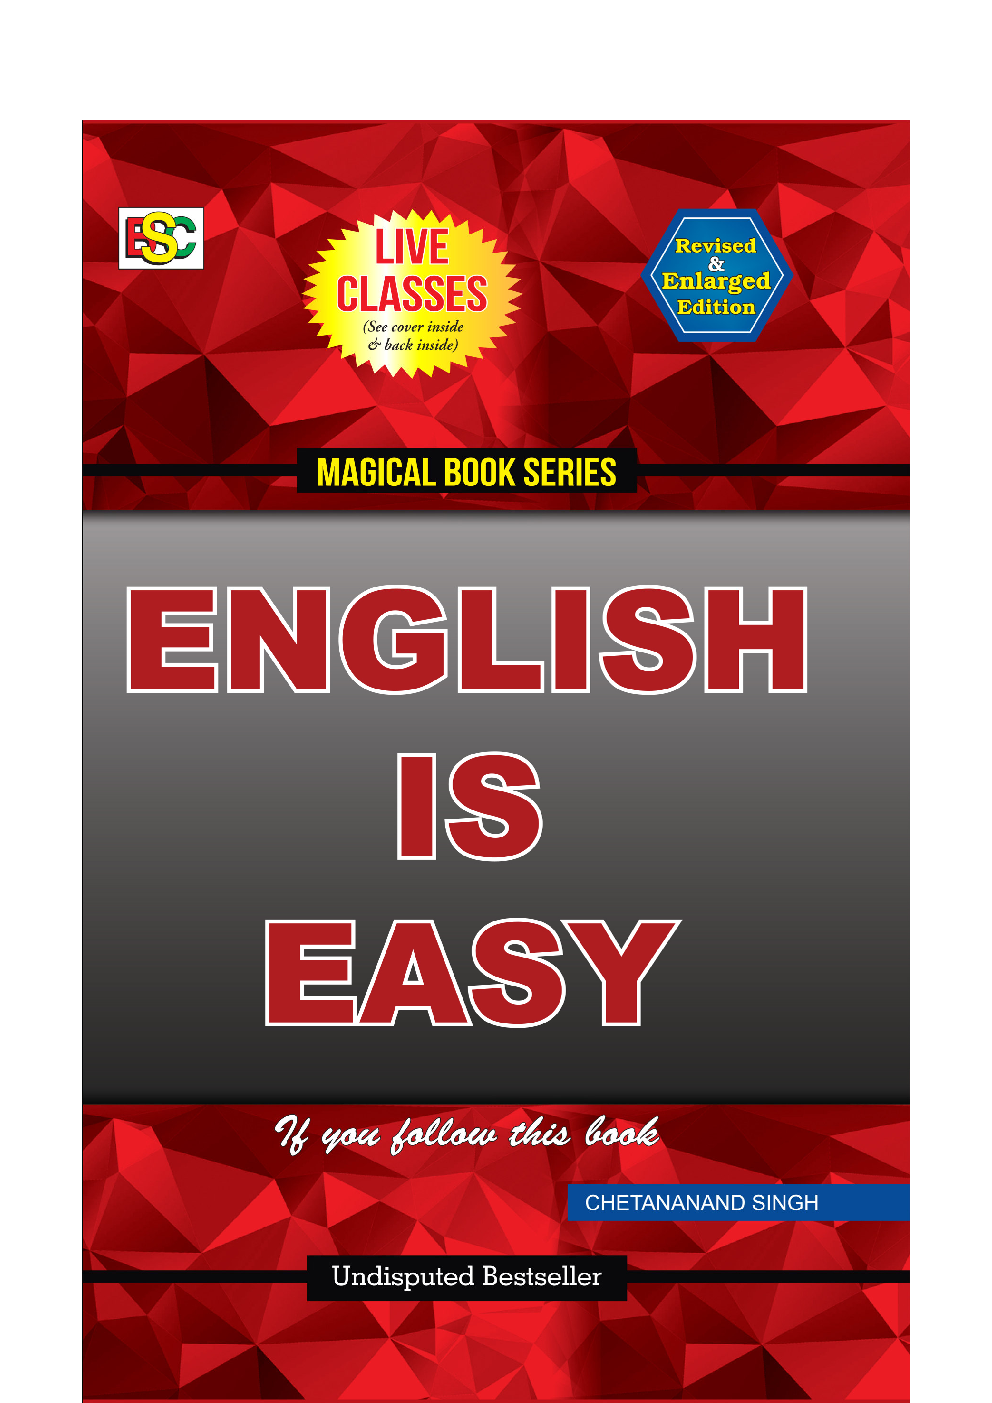 Magical Book Series: English Is Easy - Page 1